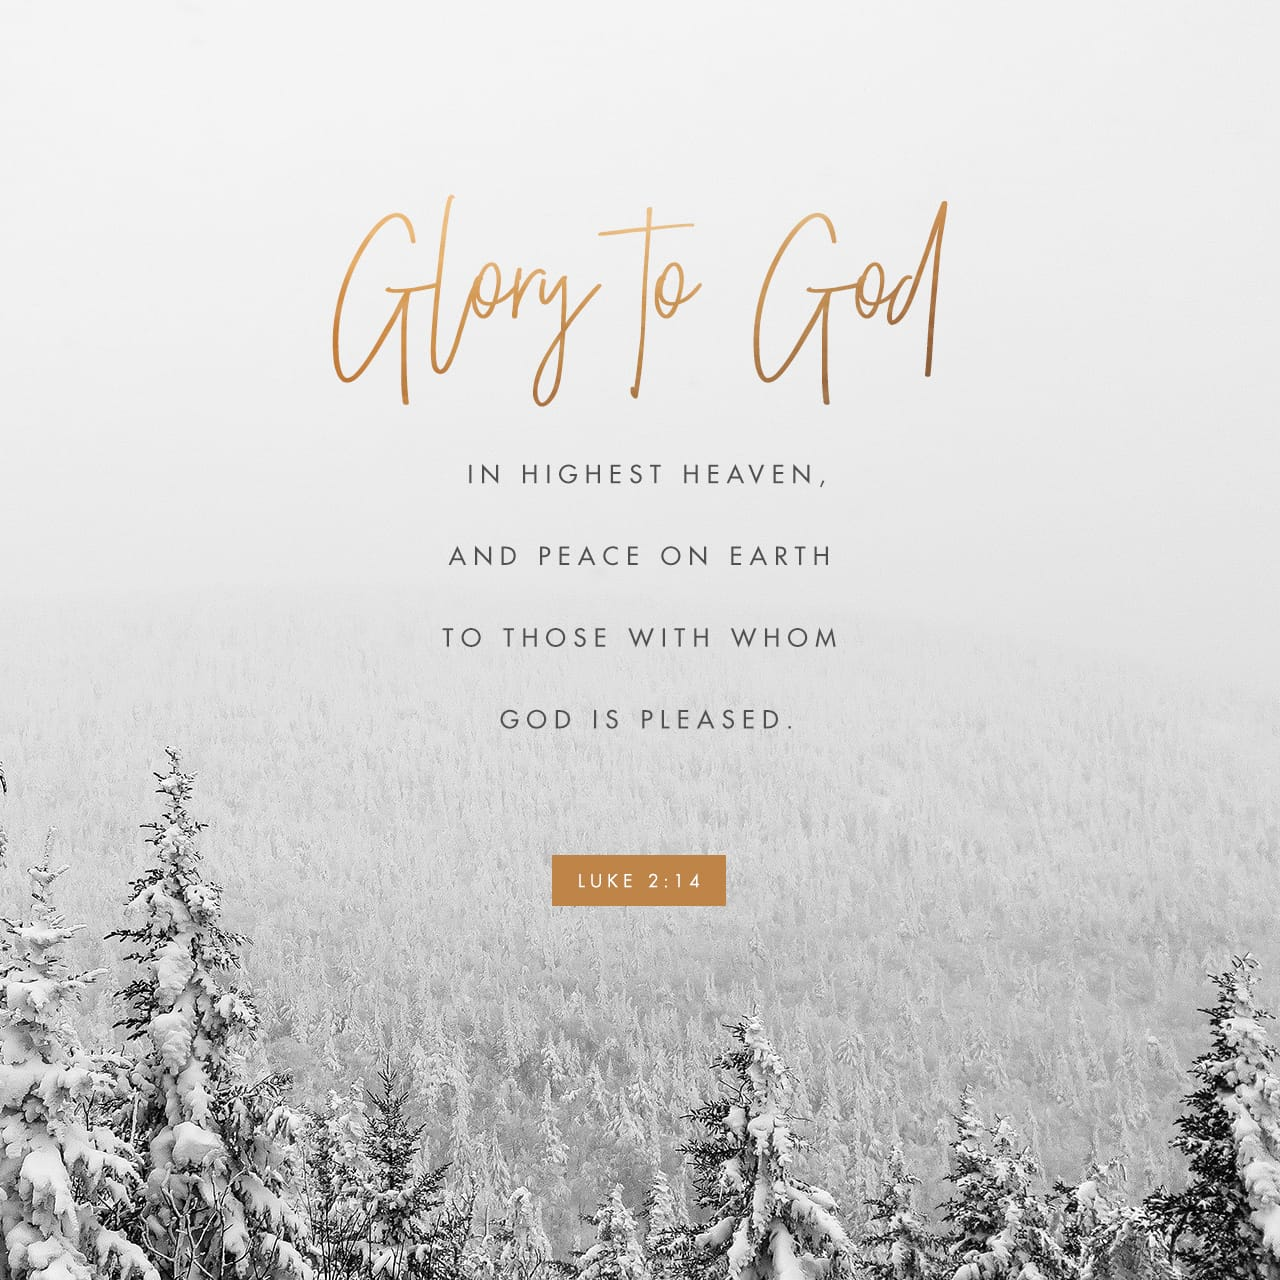 Luke 2:6-14 And while they were there, the time came for her baby to be born. She gave birth to her firstborn son. She wrapped him snugly in strips of cloth and laid him in a manger, because there was no lodging | New Living Translation (NLT)